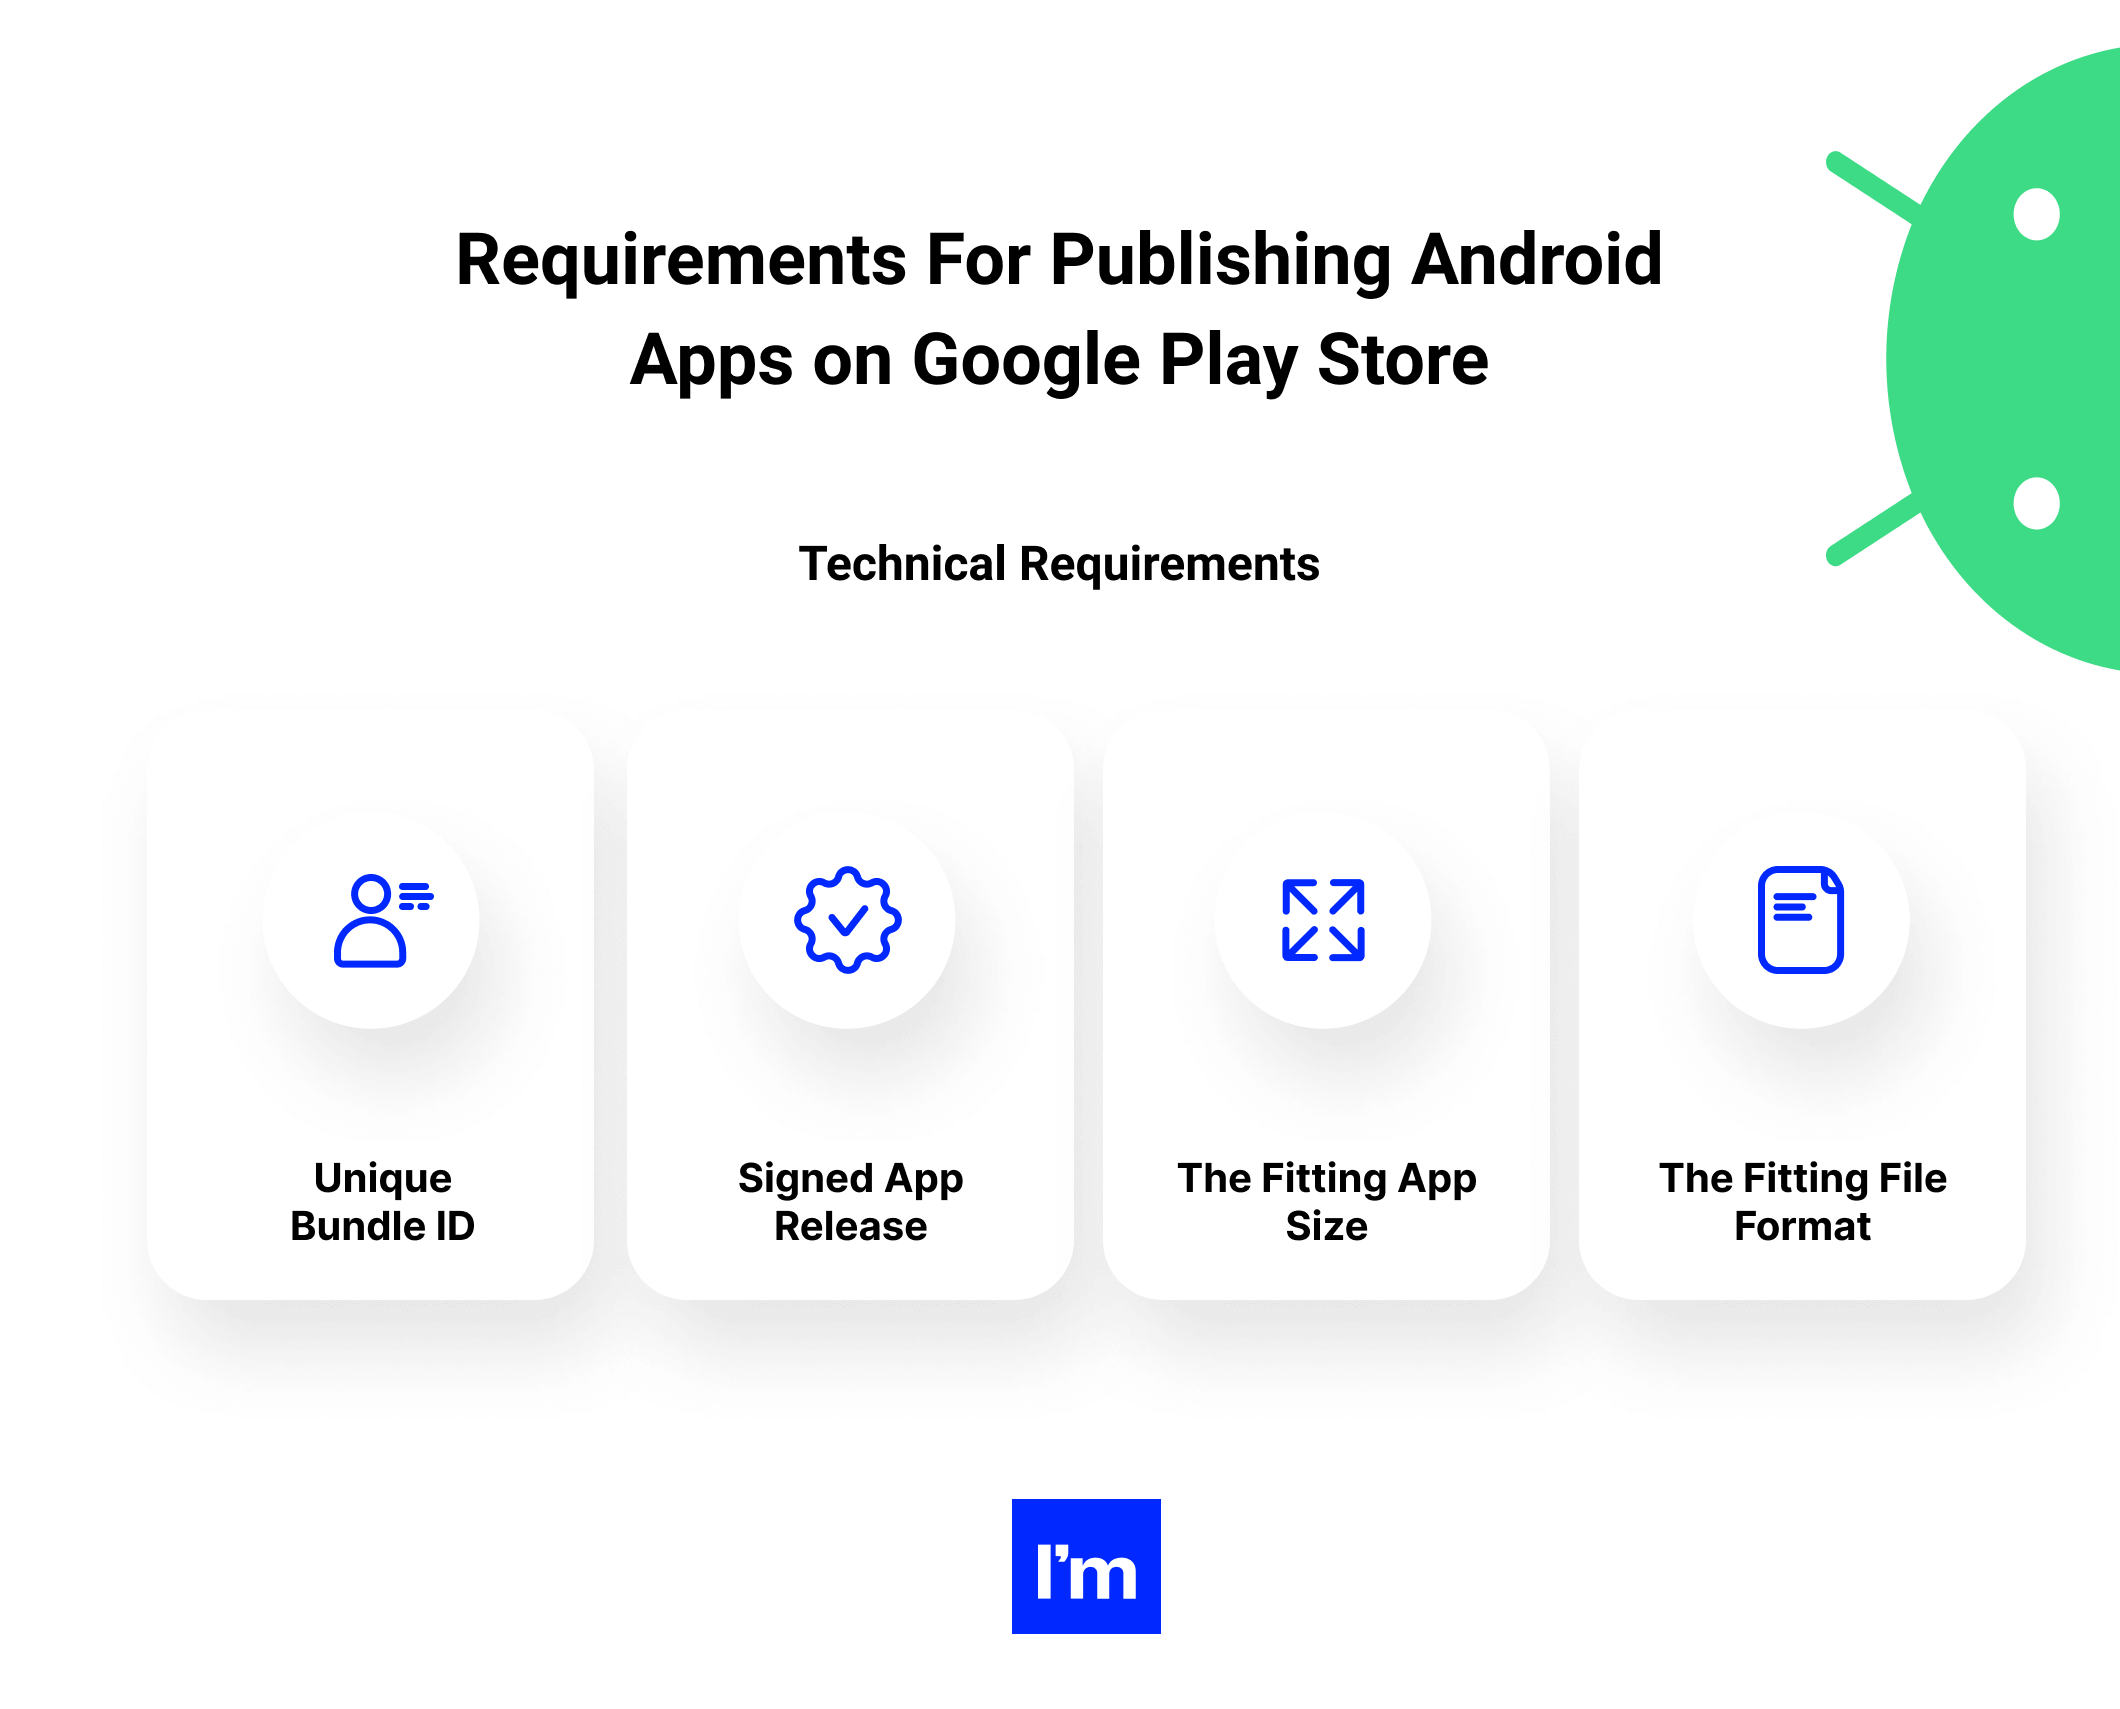 technical requirements for publishing android apps on google play store